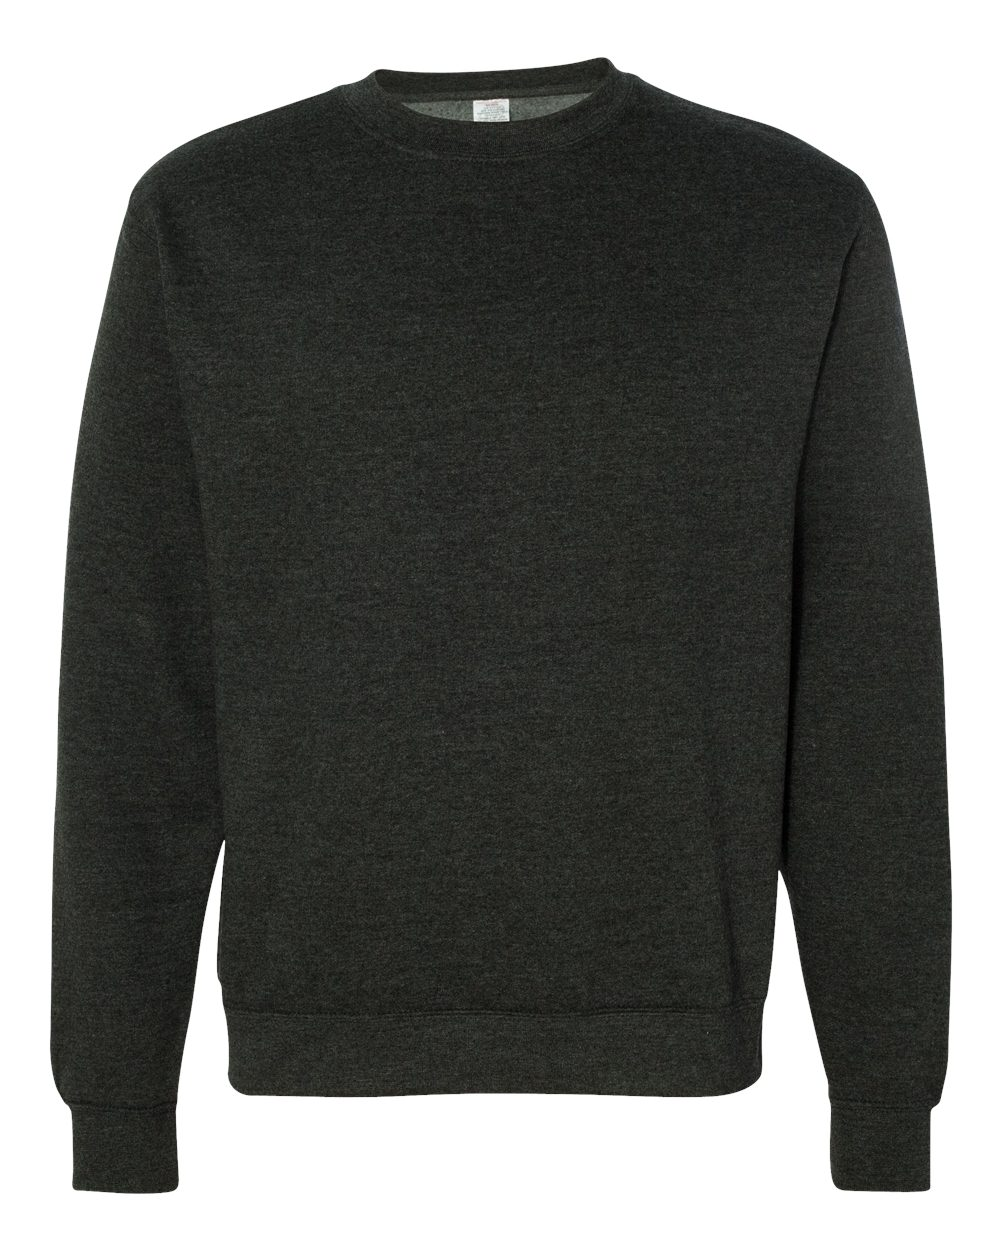 Independent-Trading-Co-Midweight-Crewneck-Sweatshirt-SS3000-up-to-3XL miniature 12